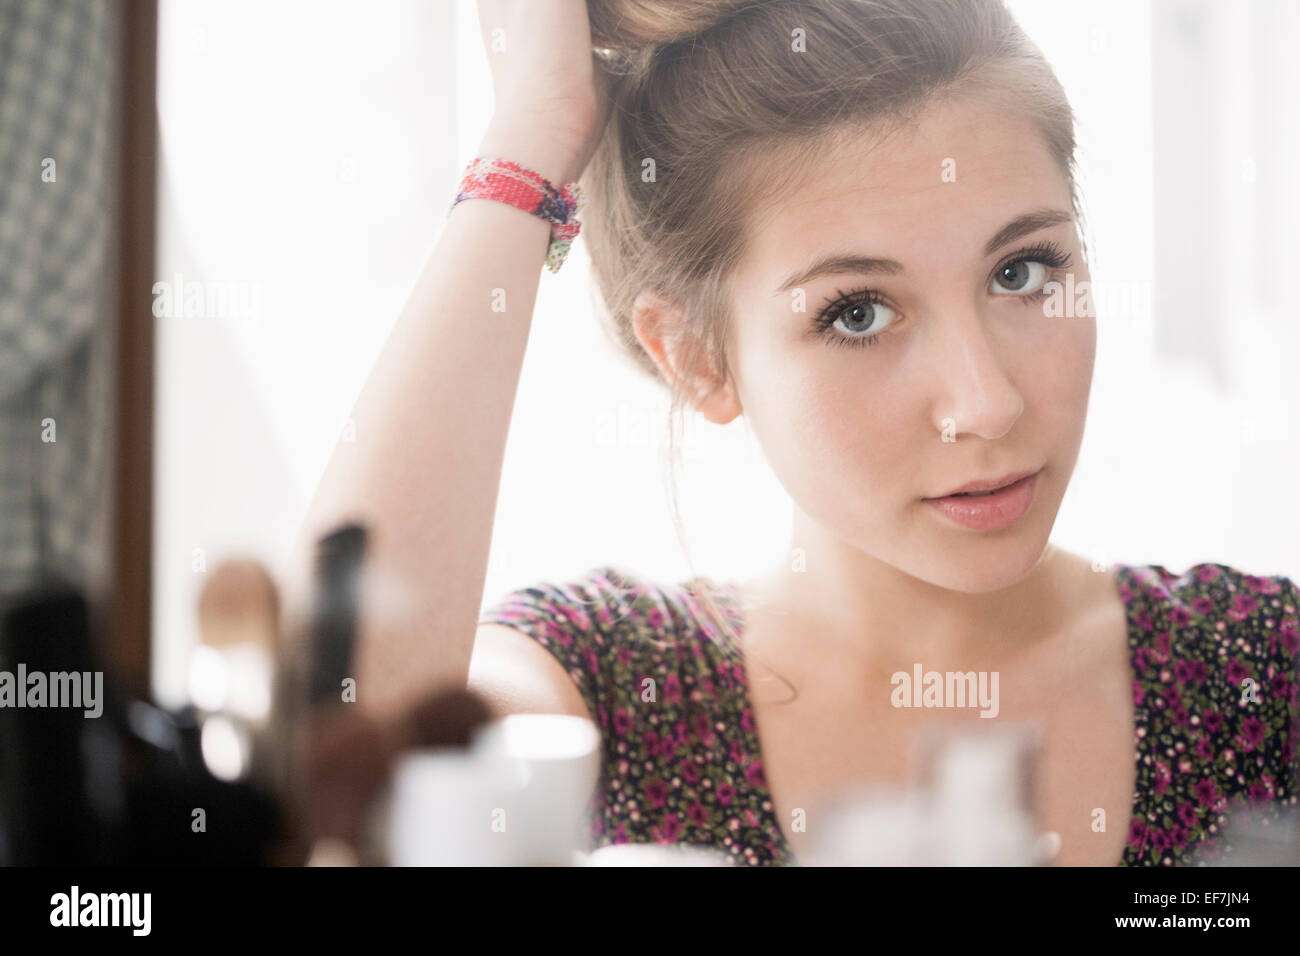 Teenage girl looking at mirror Photo Stock